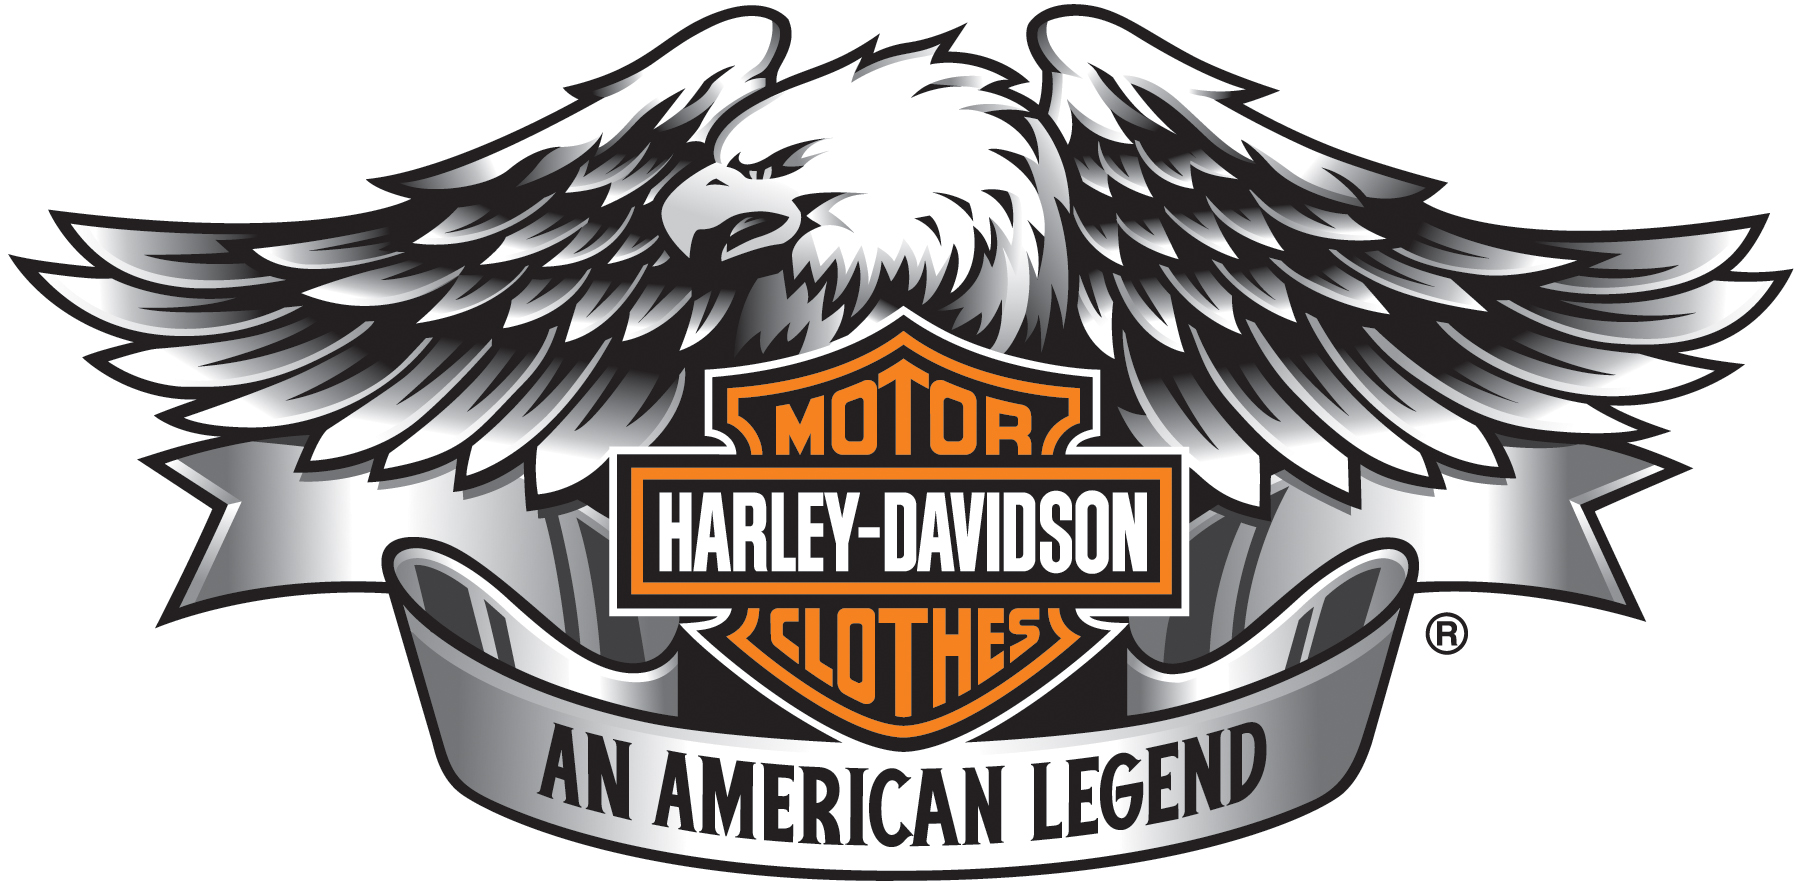 Harley Davidson Logos | Free download on ClipArtMag